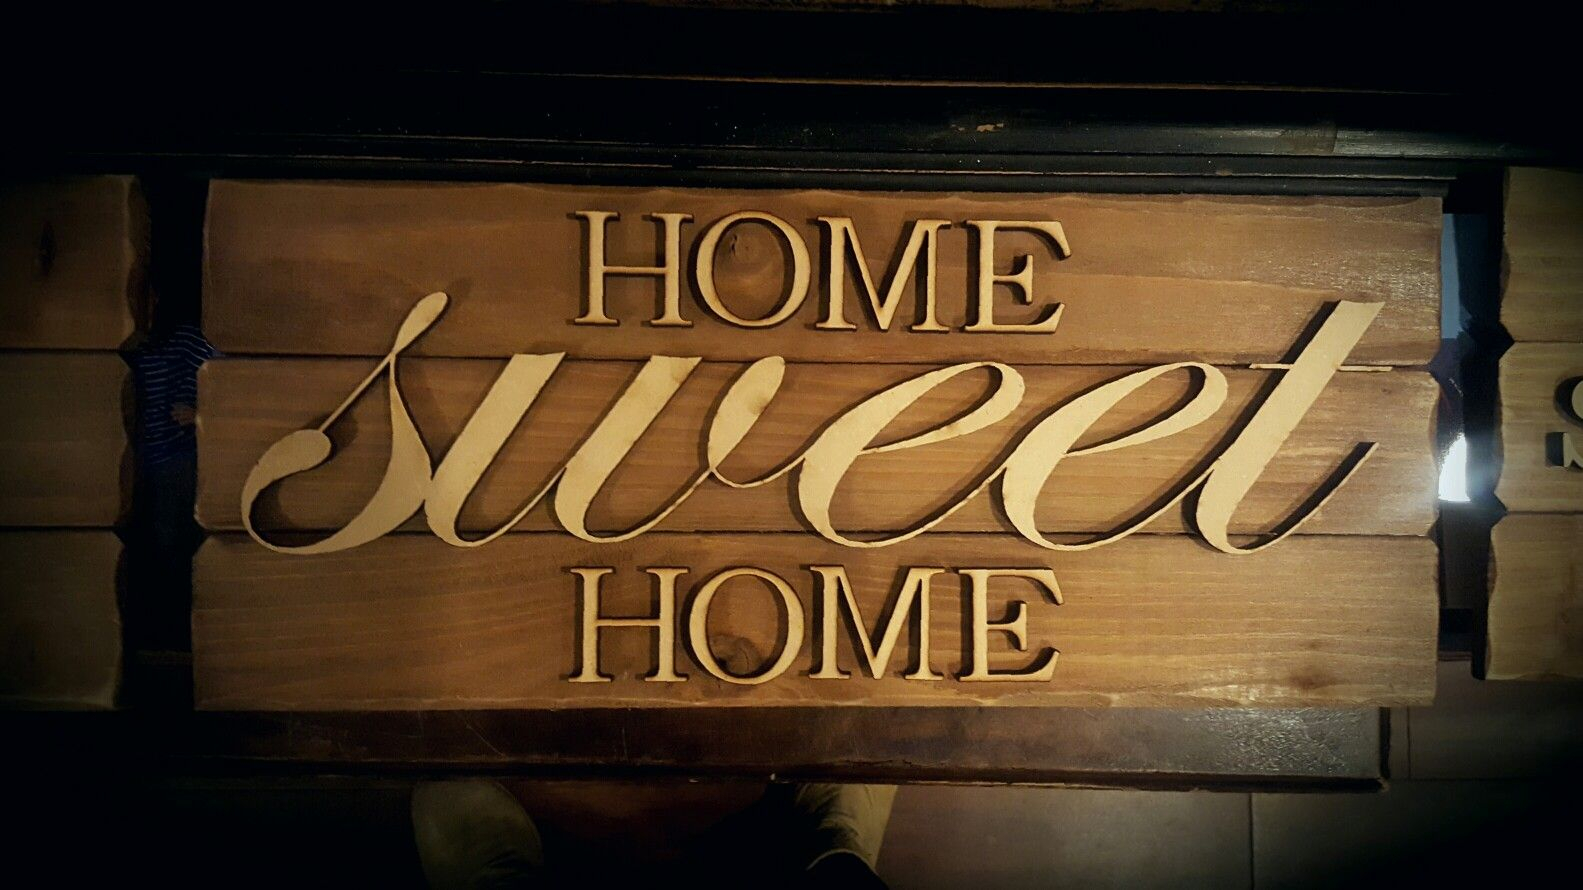 Home Sweet Home, Wall Art, New Home, Wall Decor, Wood Sign Regarding Laser Engraved Home Sweet Home Wall Decor (View 11 of 30)